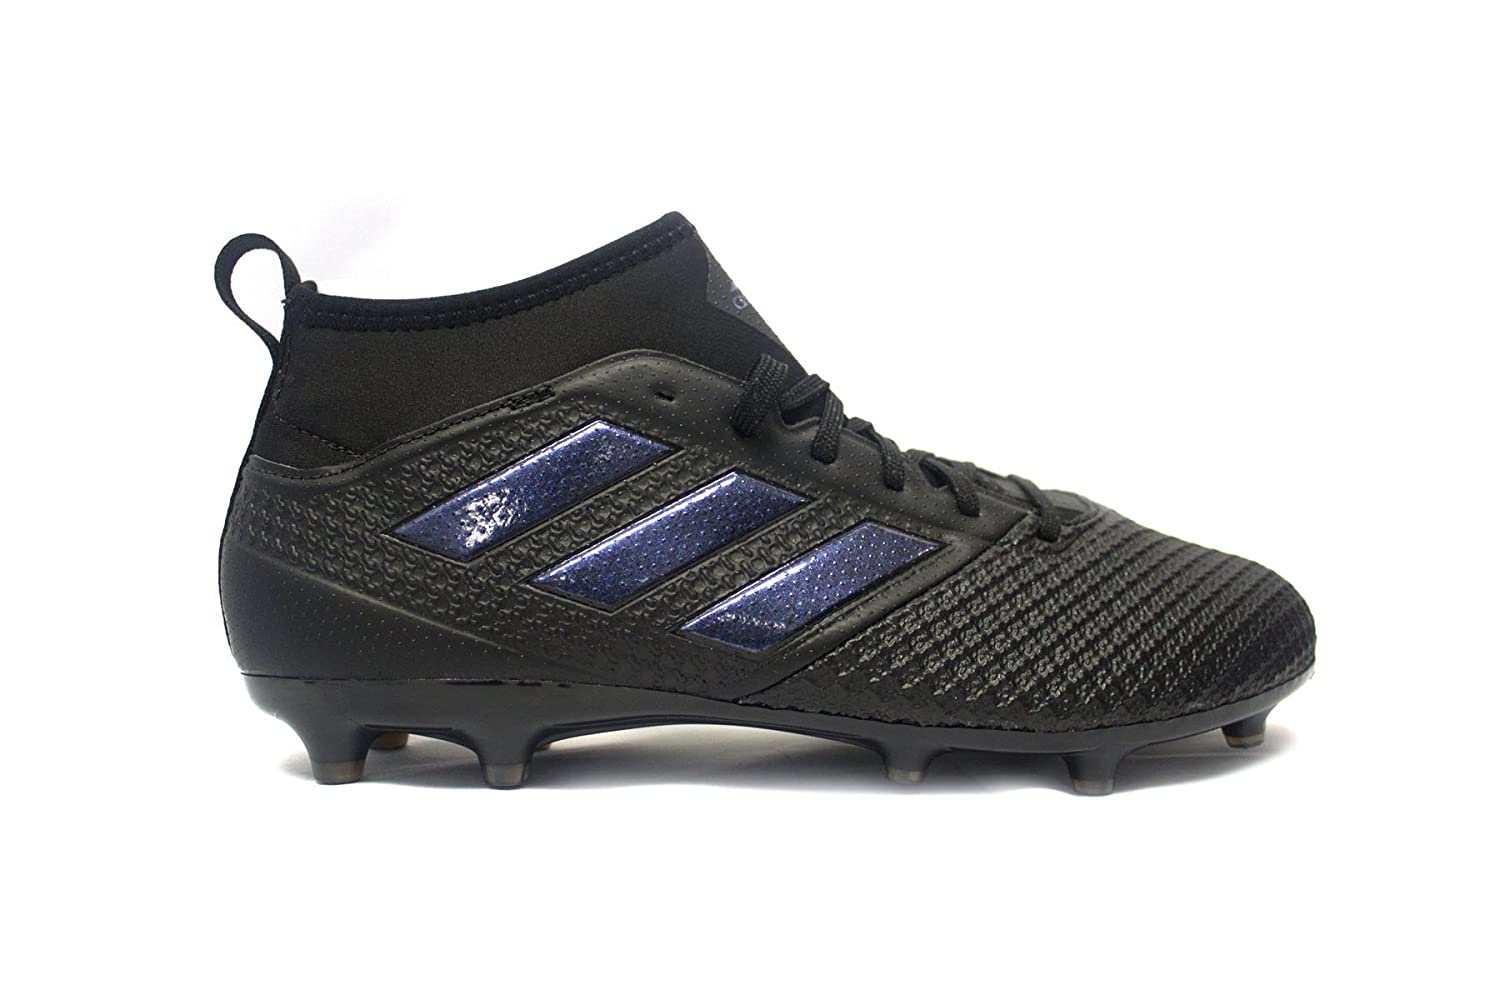 AdidasACE 17.3 FG - Ace 17,3 Firm Ground Schuhplatten (Cleats) Herren